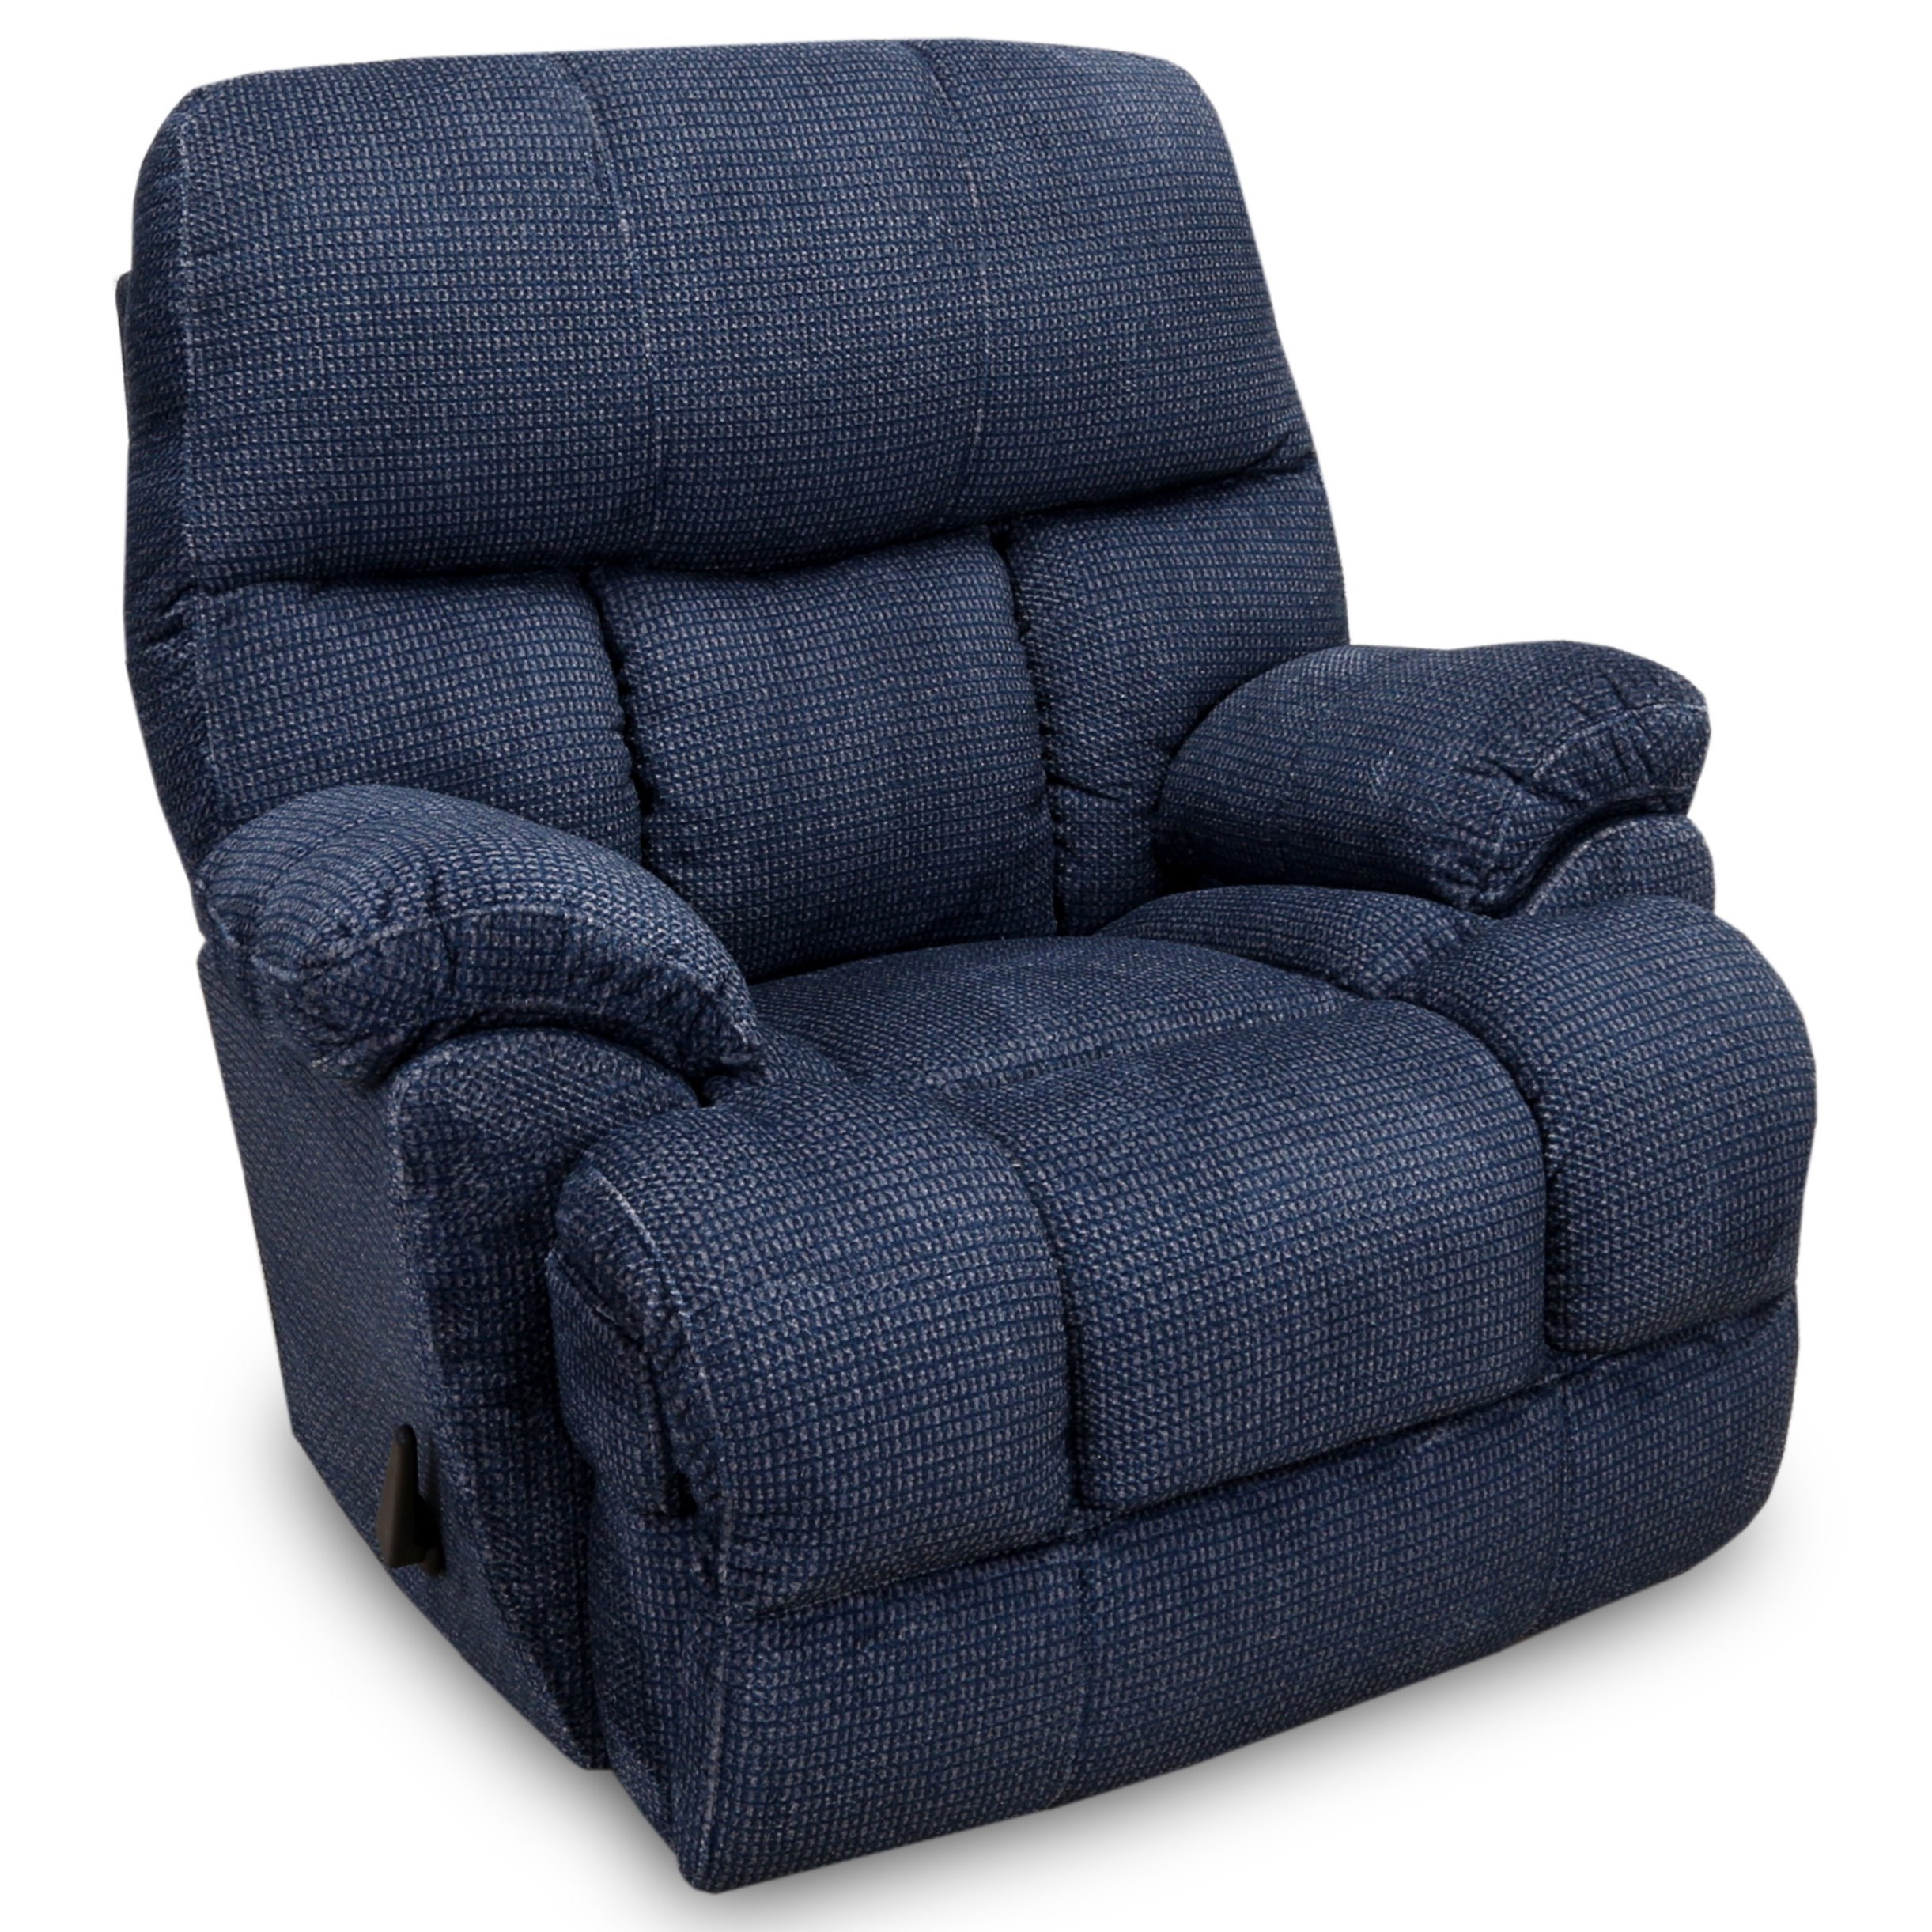 Franklin Recliners Conqueror Swivel Glider Recliner by Franklin at Turk Furniture